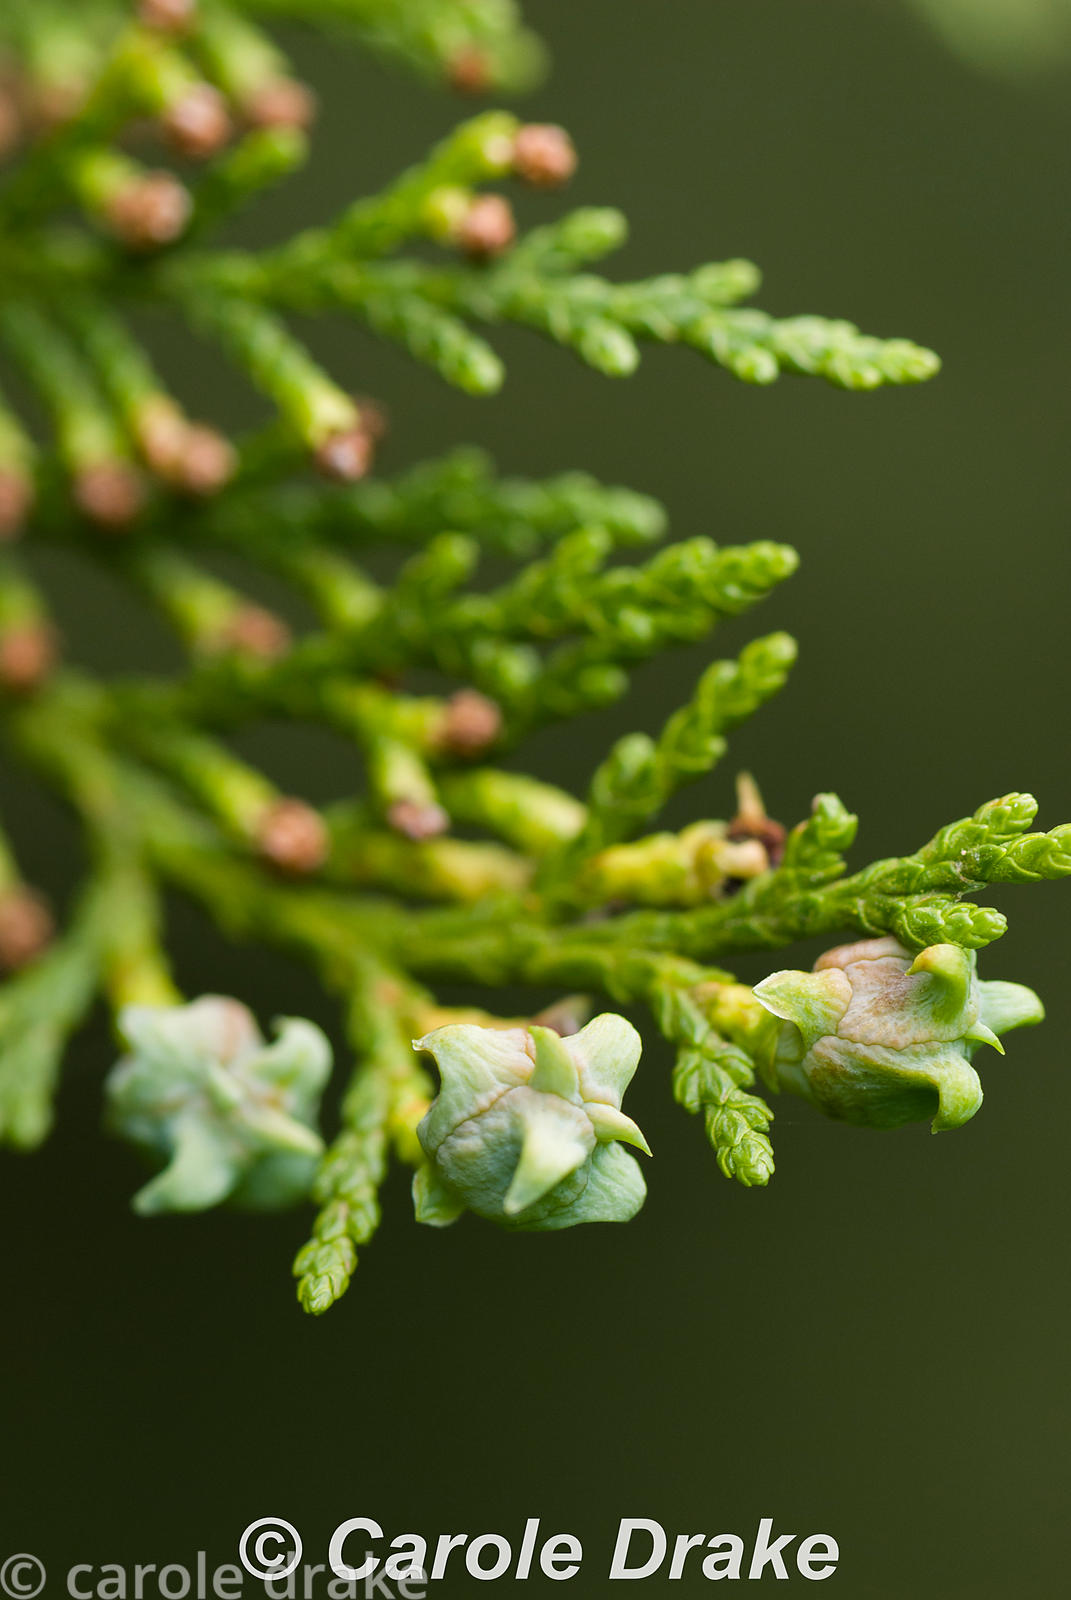 Thuja orientalis. Sir Harold Hillier Gardens/Hampshire County Council, Romsey, Hants, UK